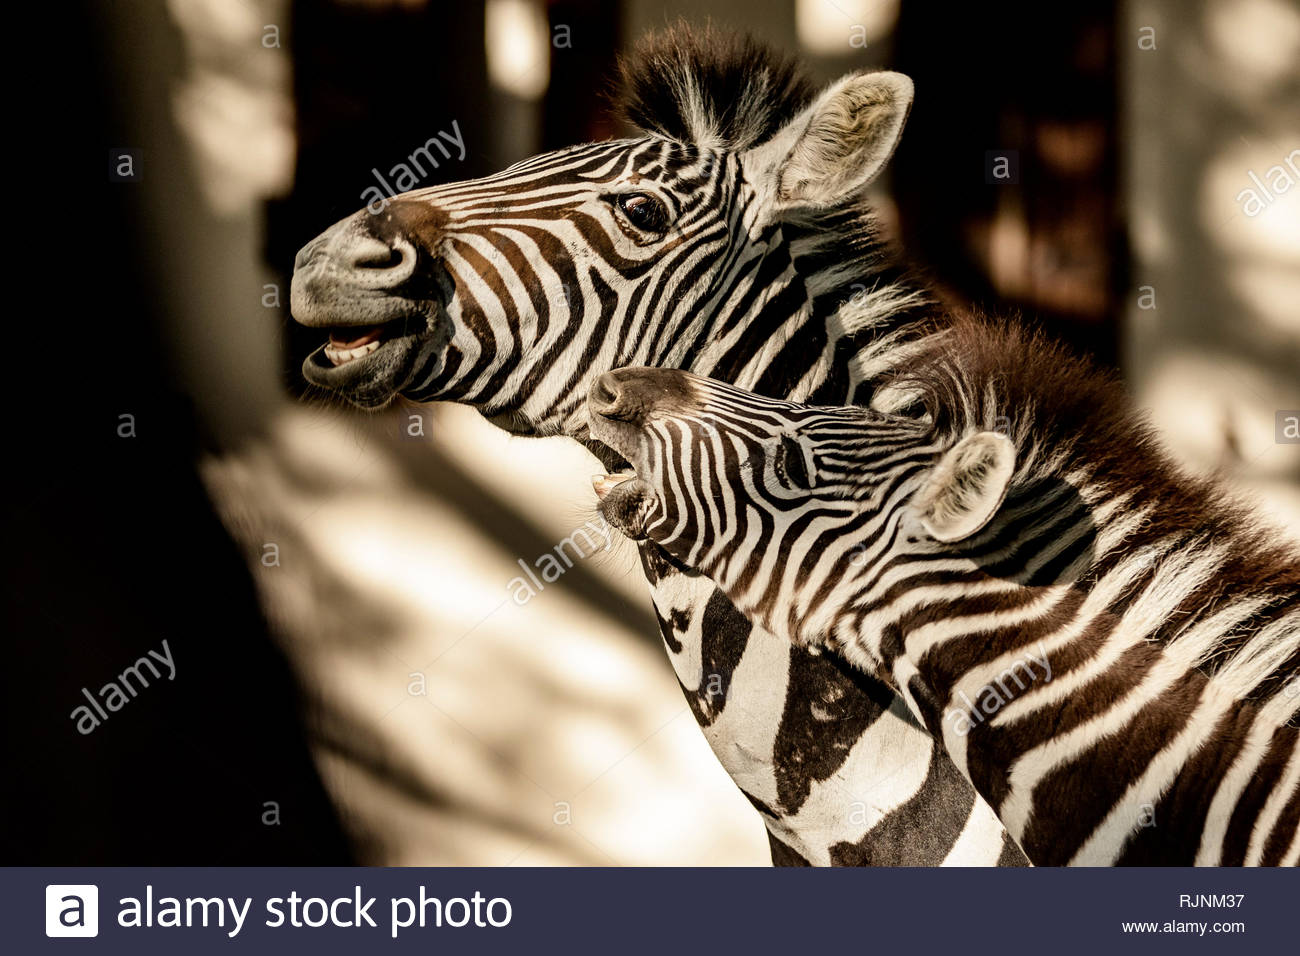 Adult zebra playing with young zebra in City of Tshwane, Gauteng, South Africa - Stock Image